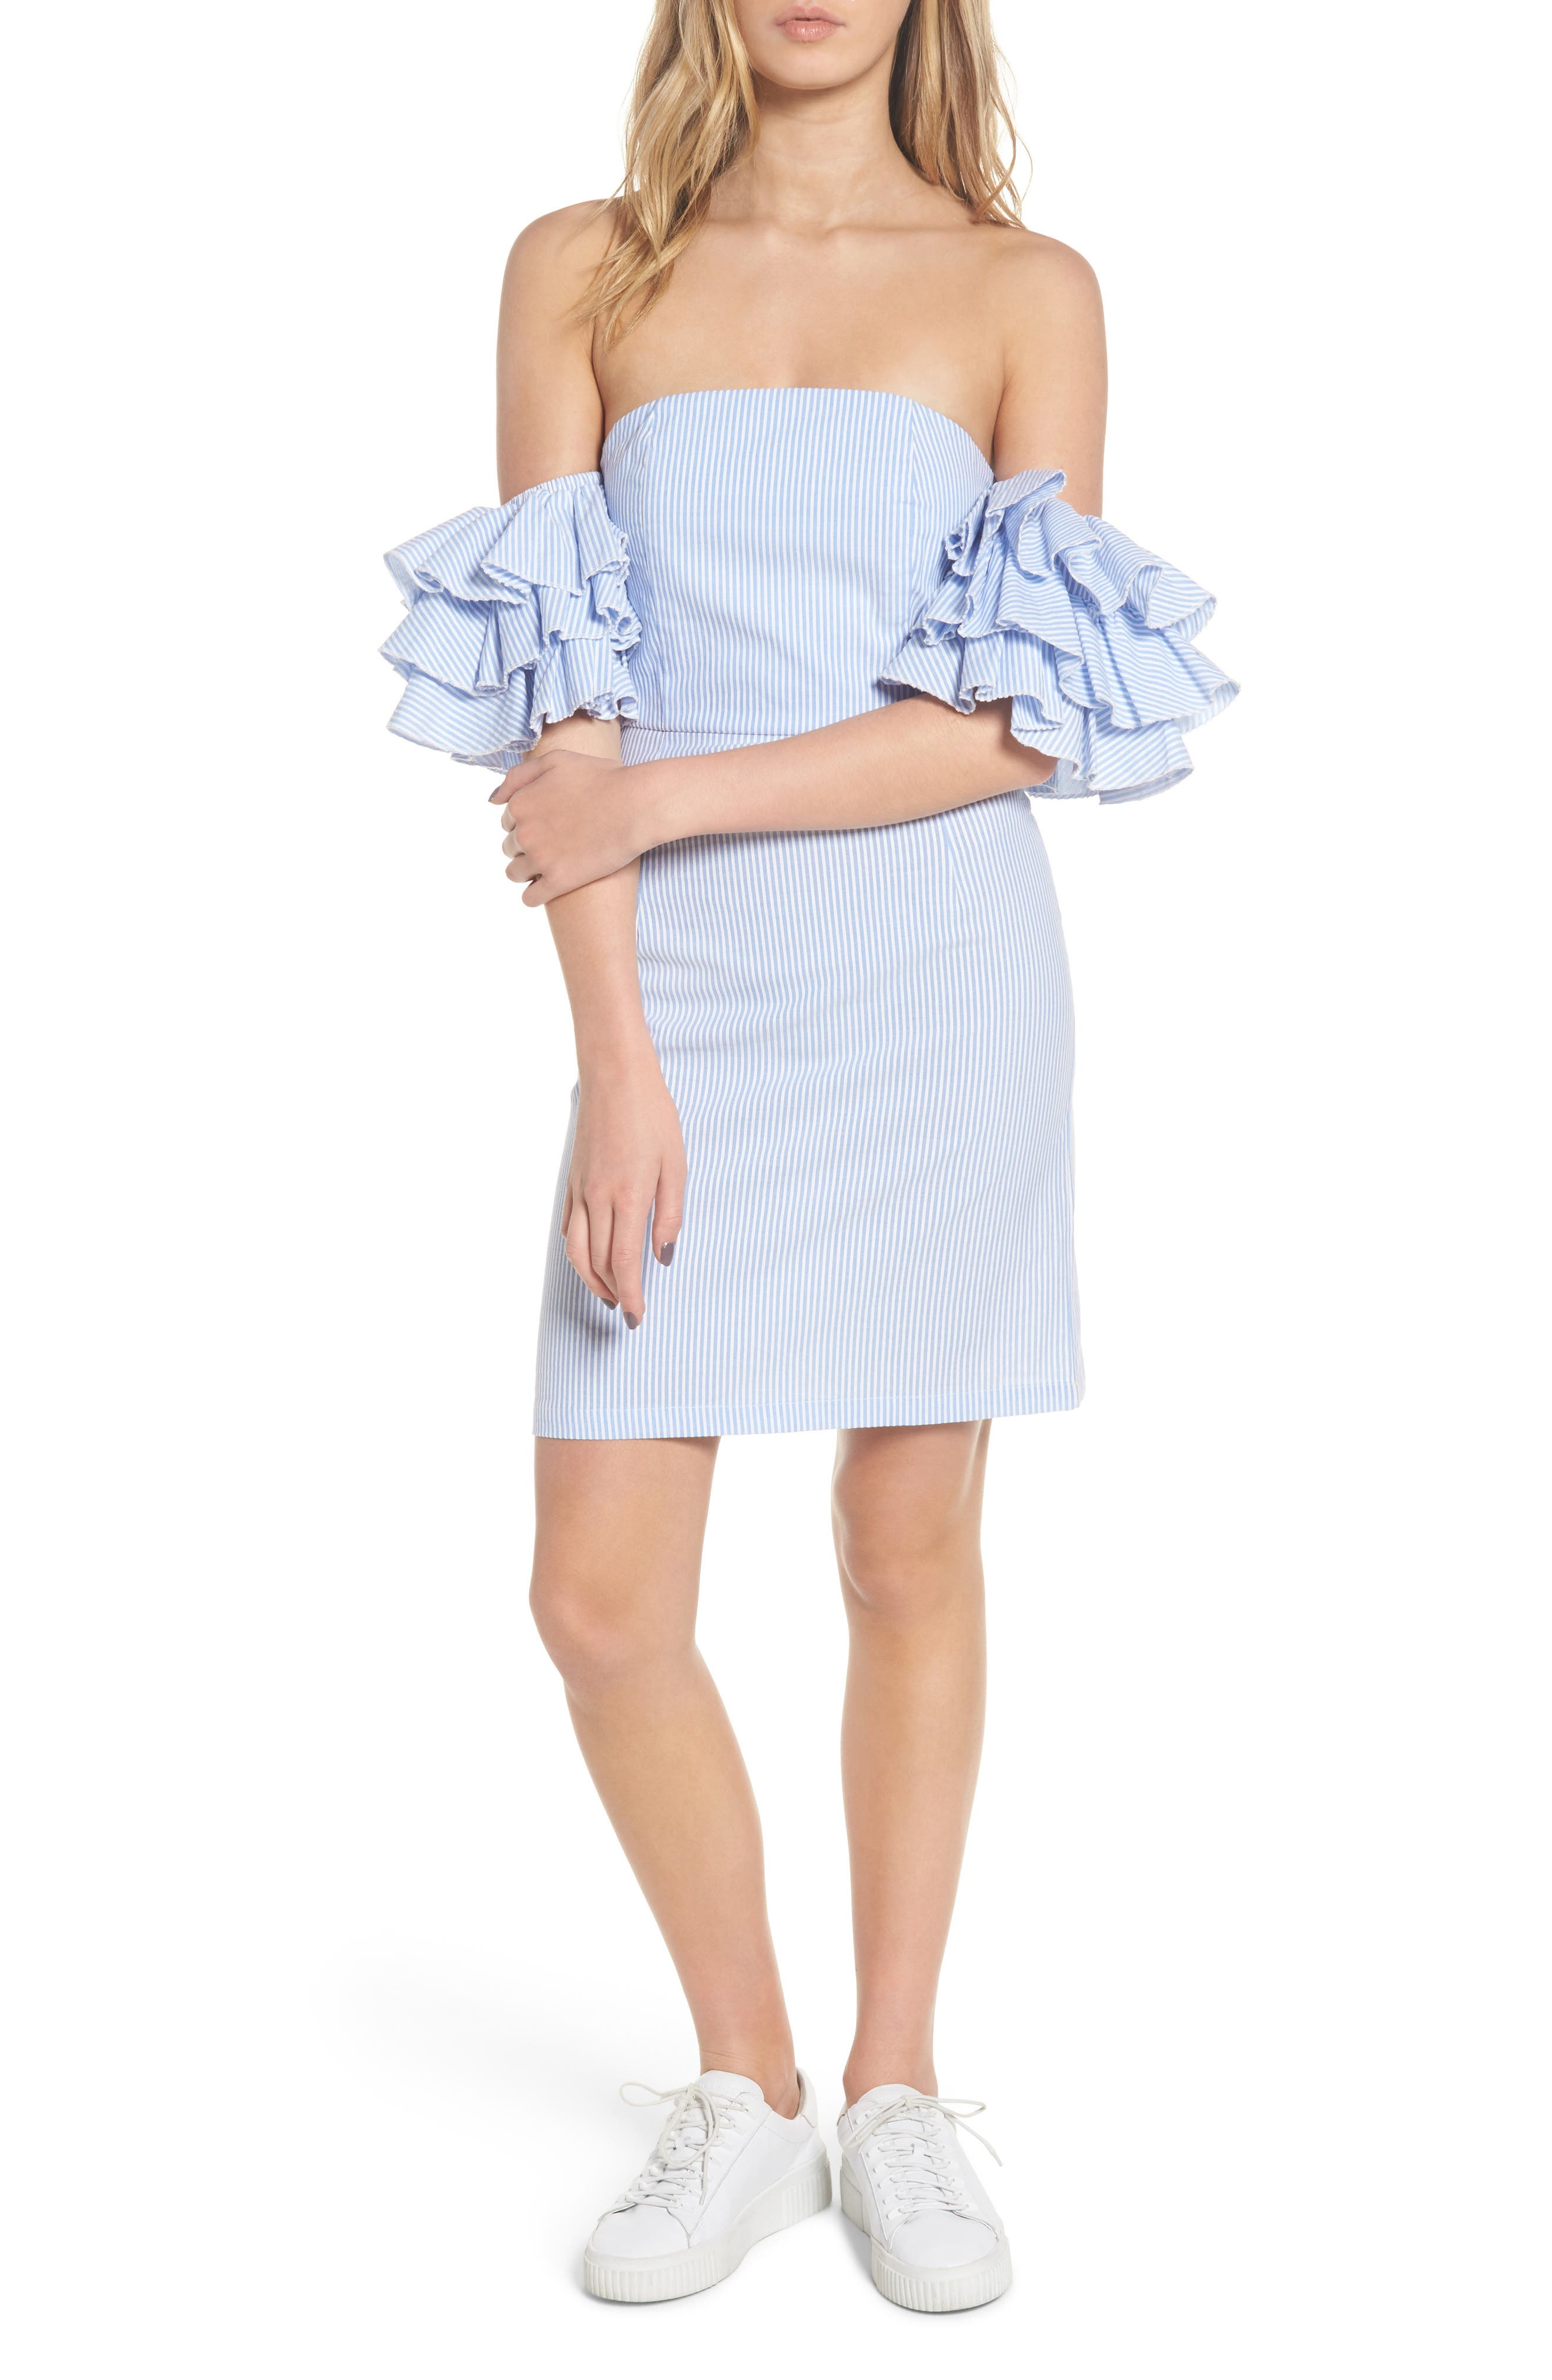 The Malibu Off the Shoulder Dress,                         Main,                         color, Pinstriped Blue